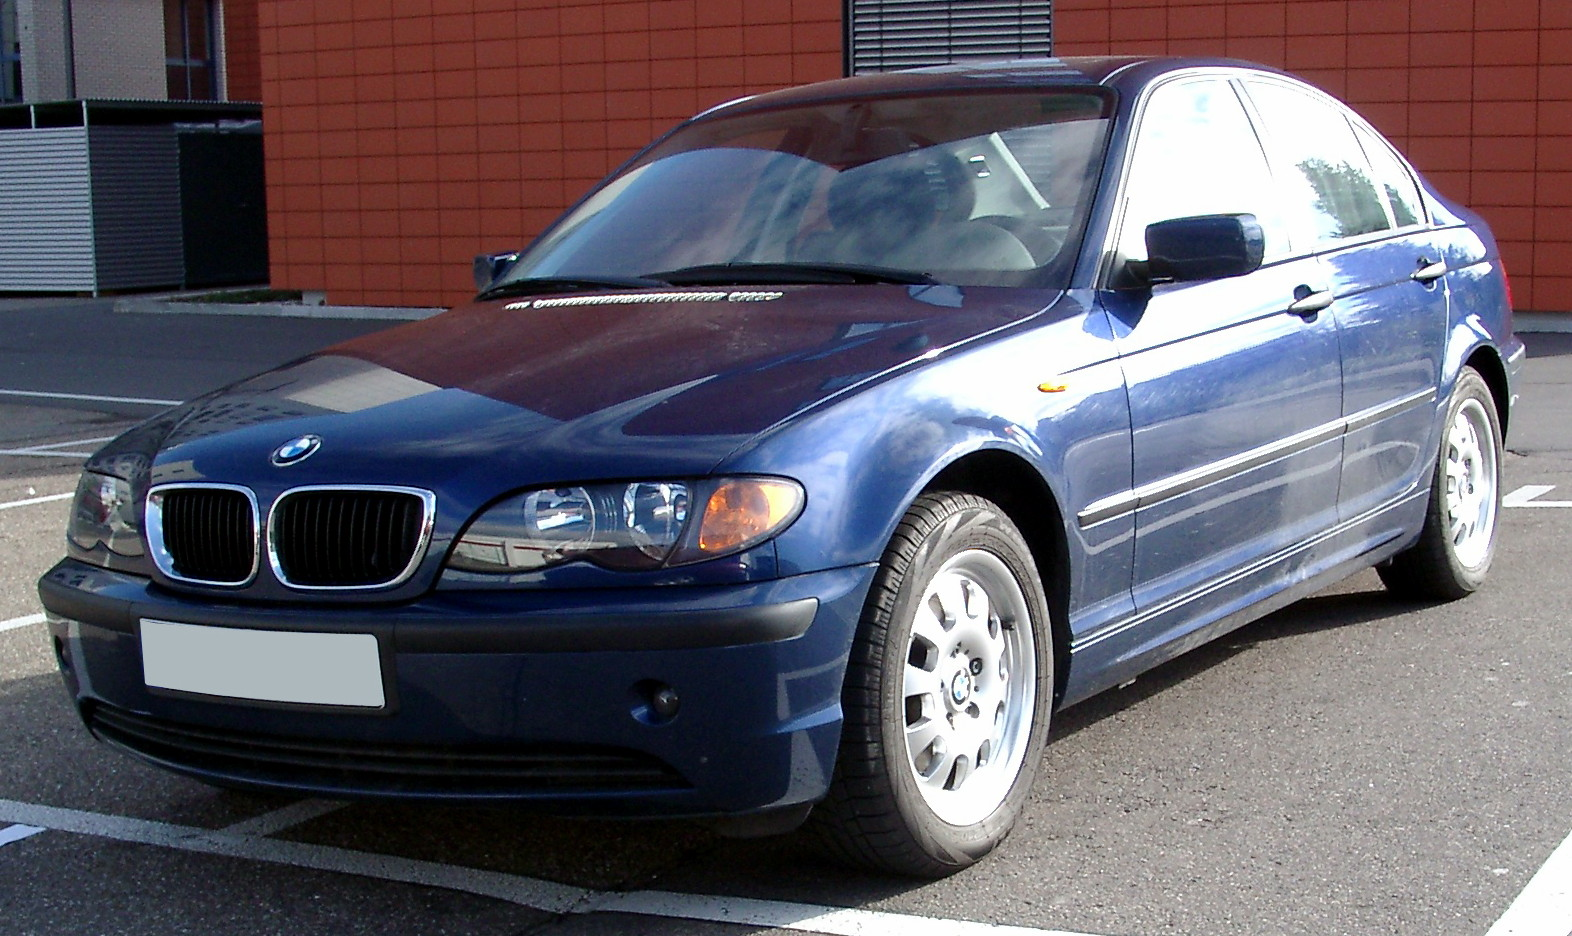 Cool Car Wallpapers: Bmw e46